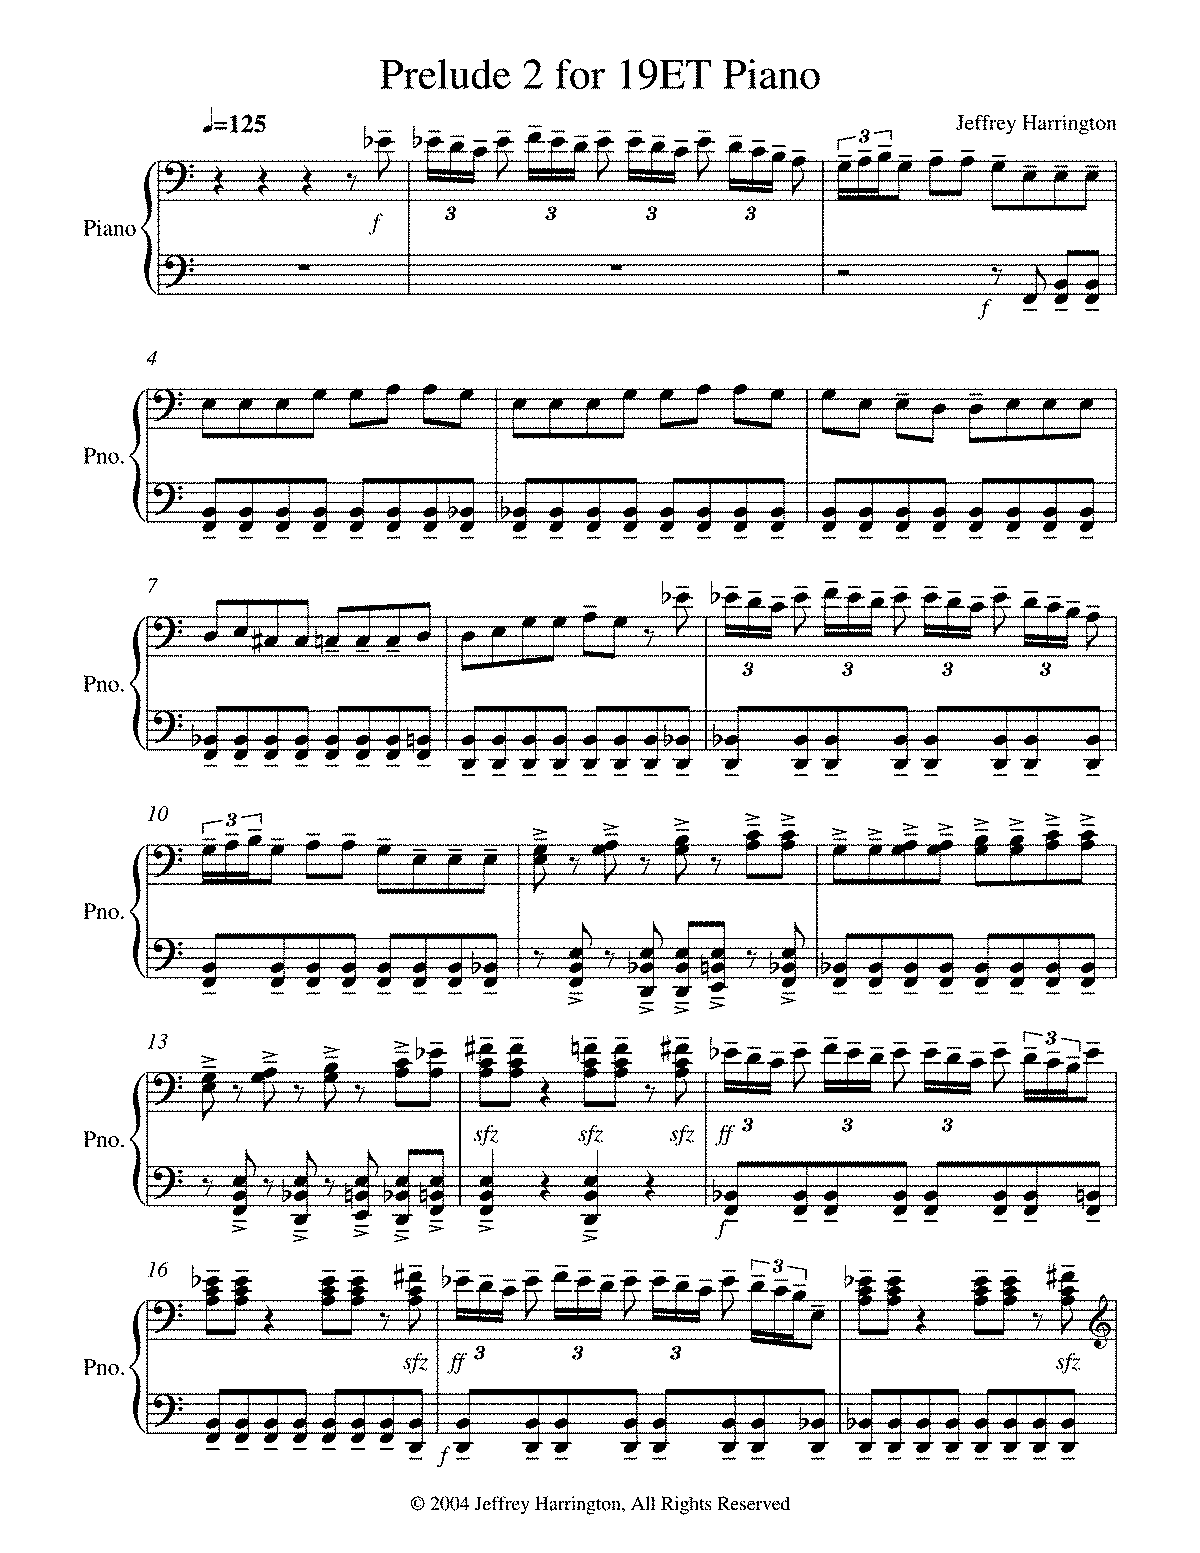 PMLP194647-HarringtonPrelude2-19ET.pdf